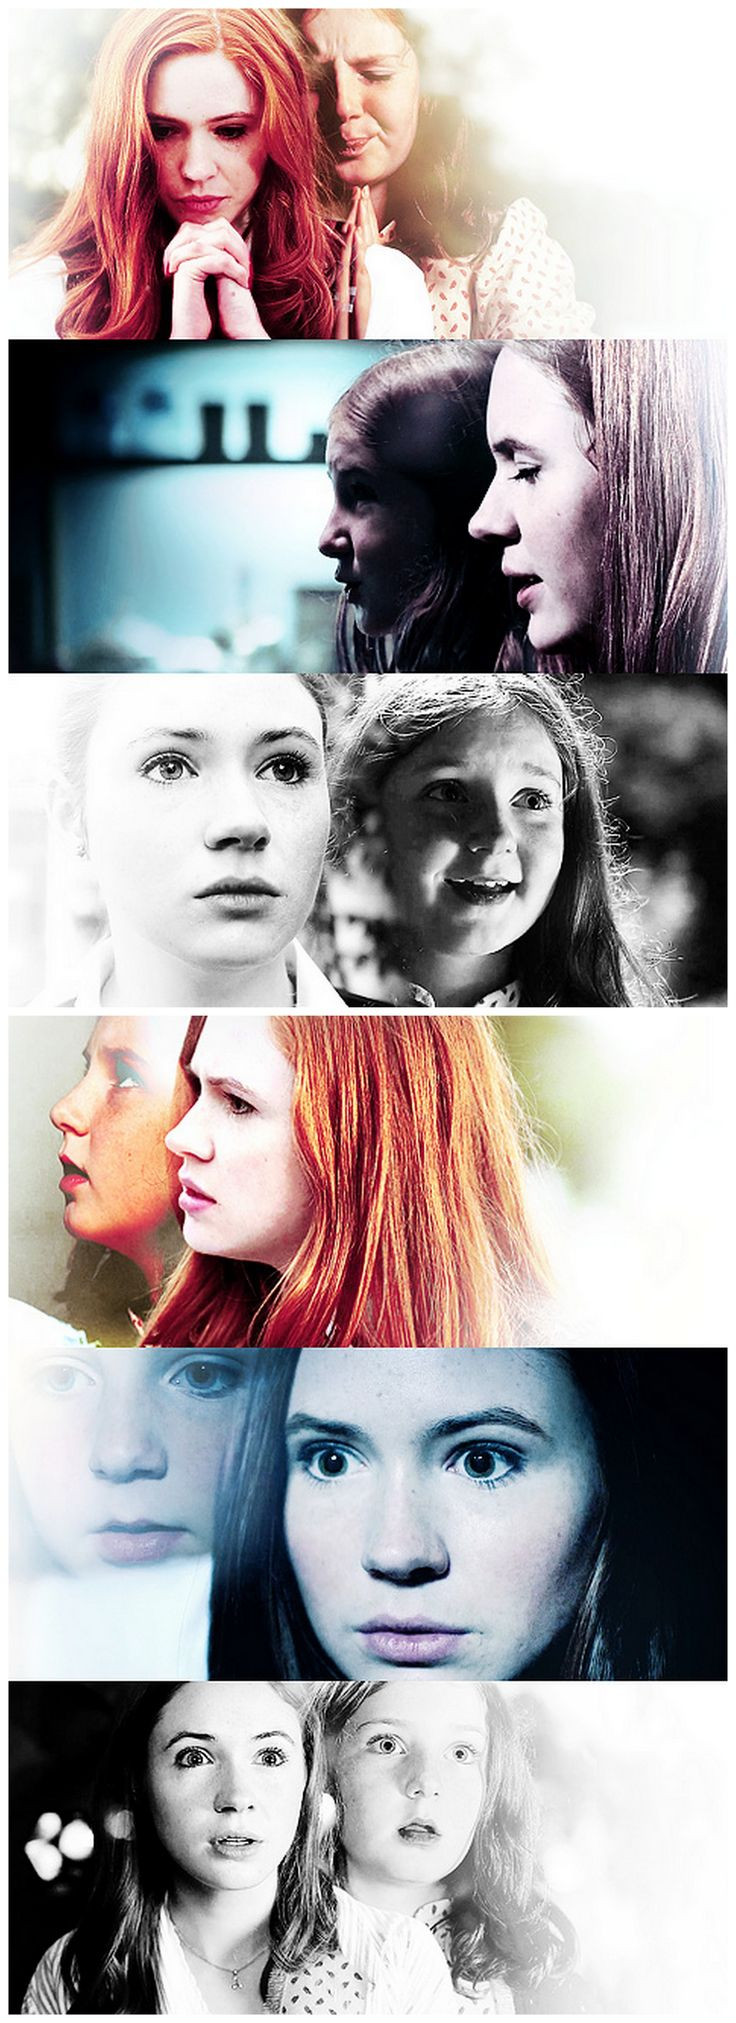 """Poor Amelia Pond, still such a child inside. Dreaming of the magic Doctor."" #DoctorWho"